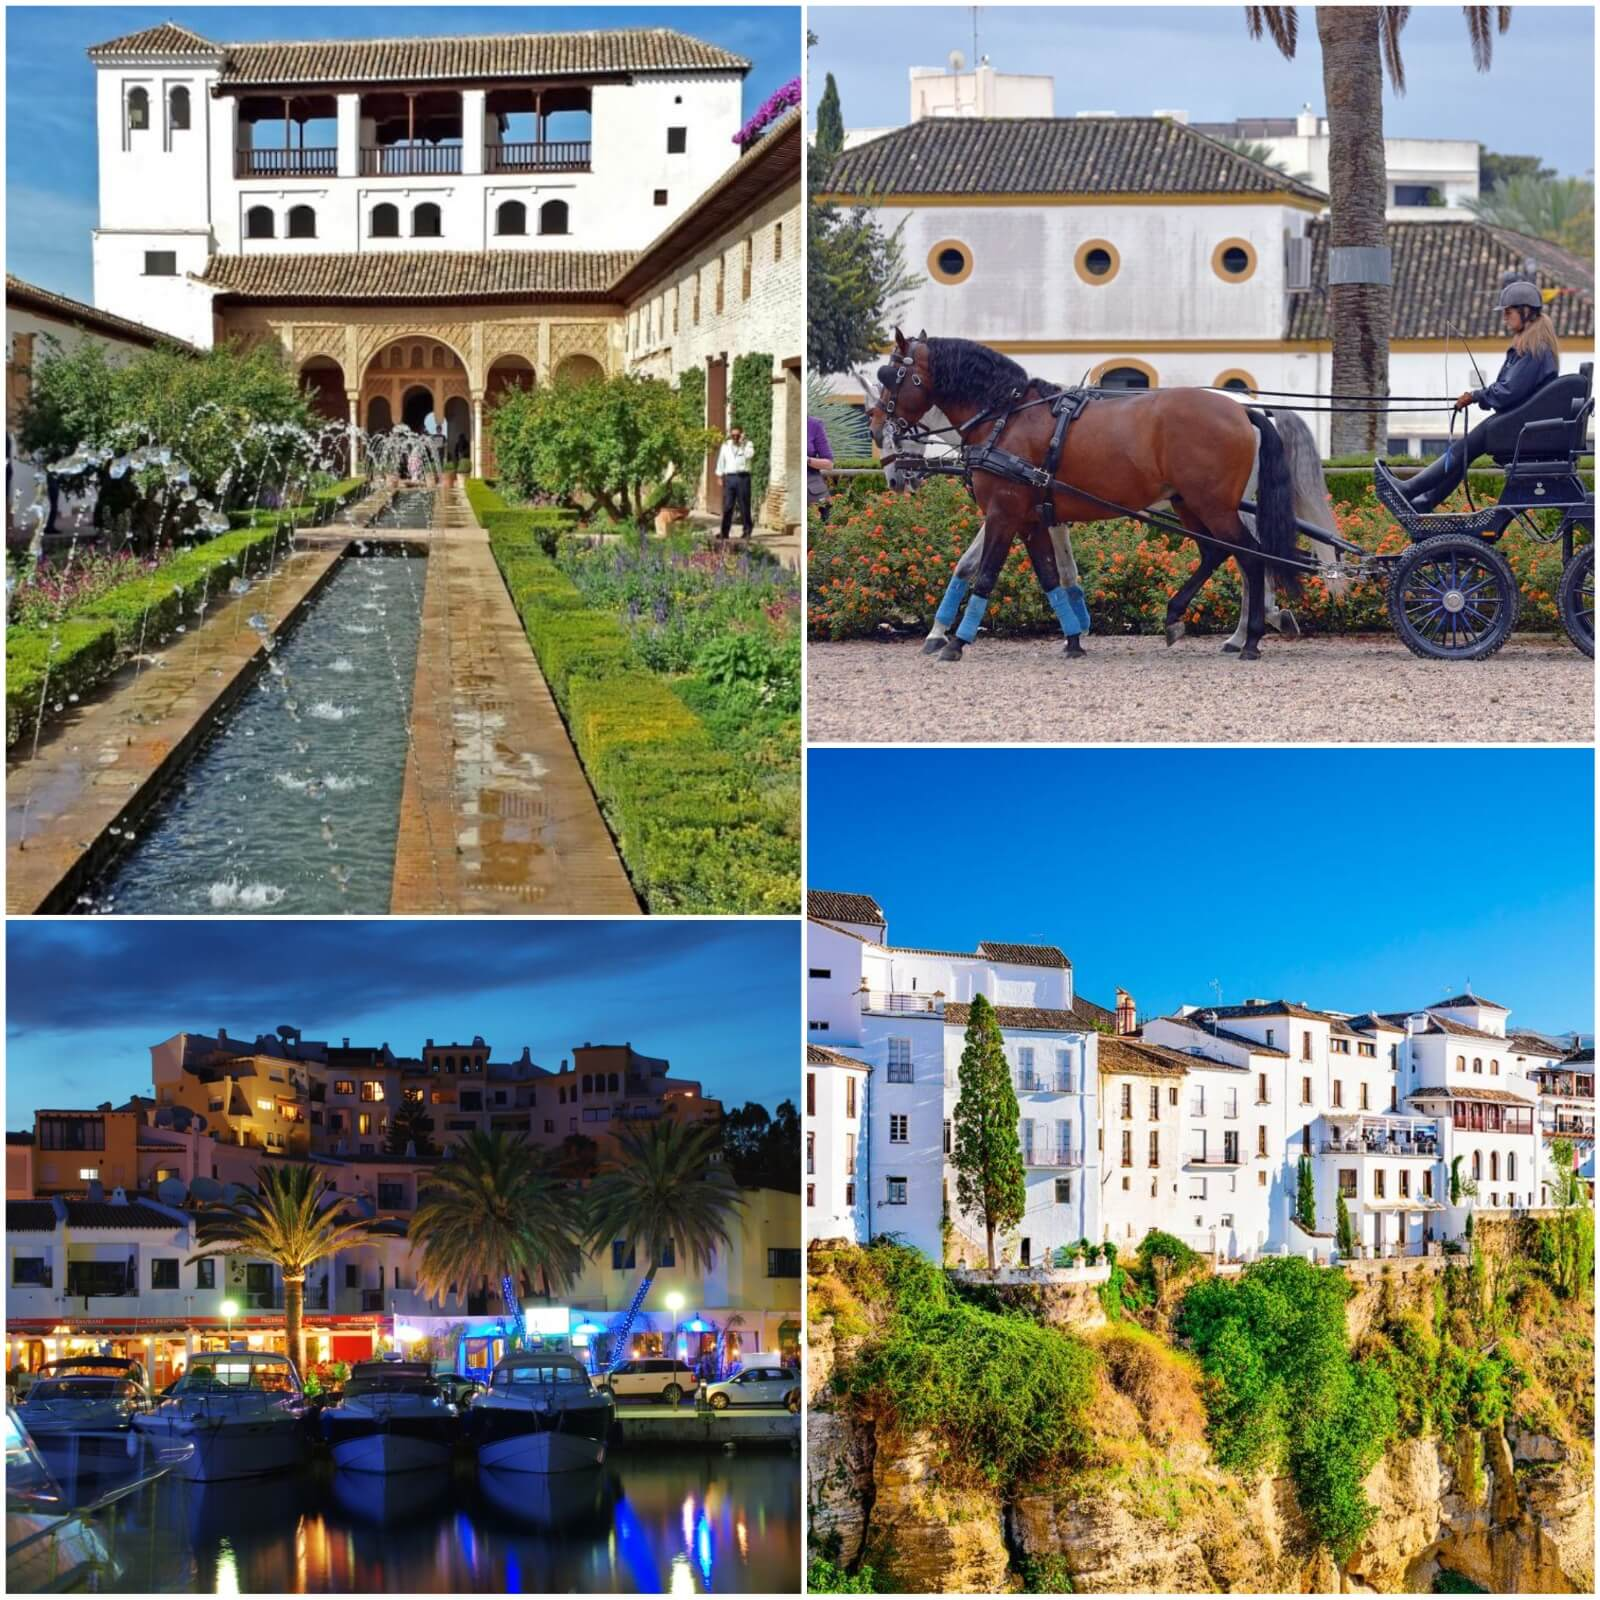 9 Ideas for Self Drive Tours in Spain and Portugal - 6. Exploring Andalusia in Depth Self Drive